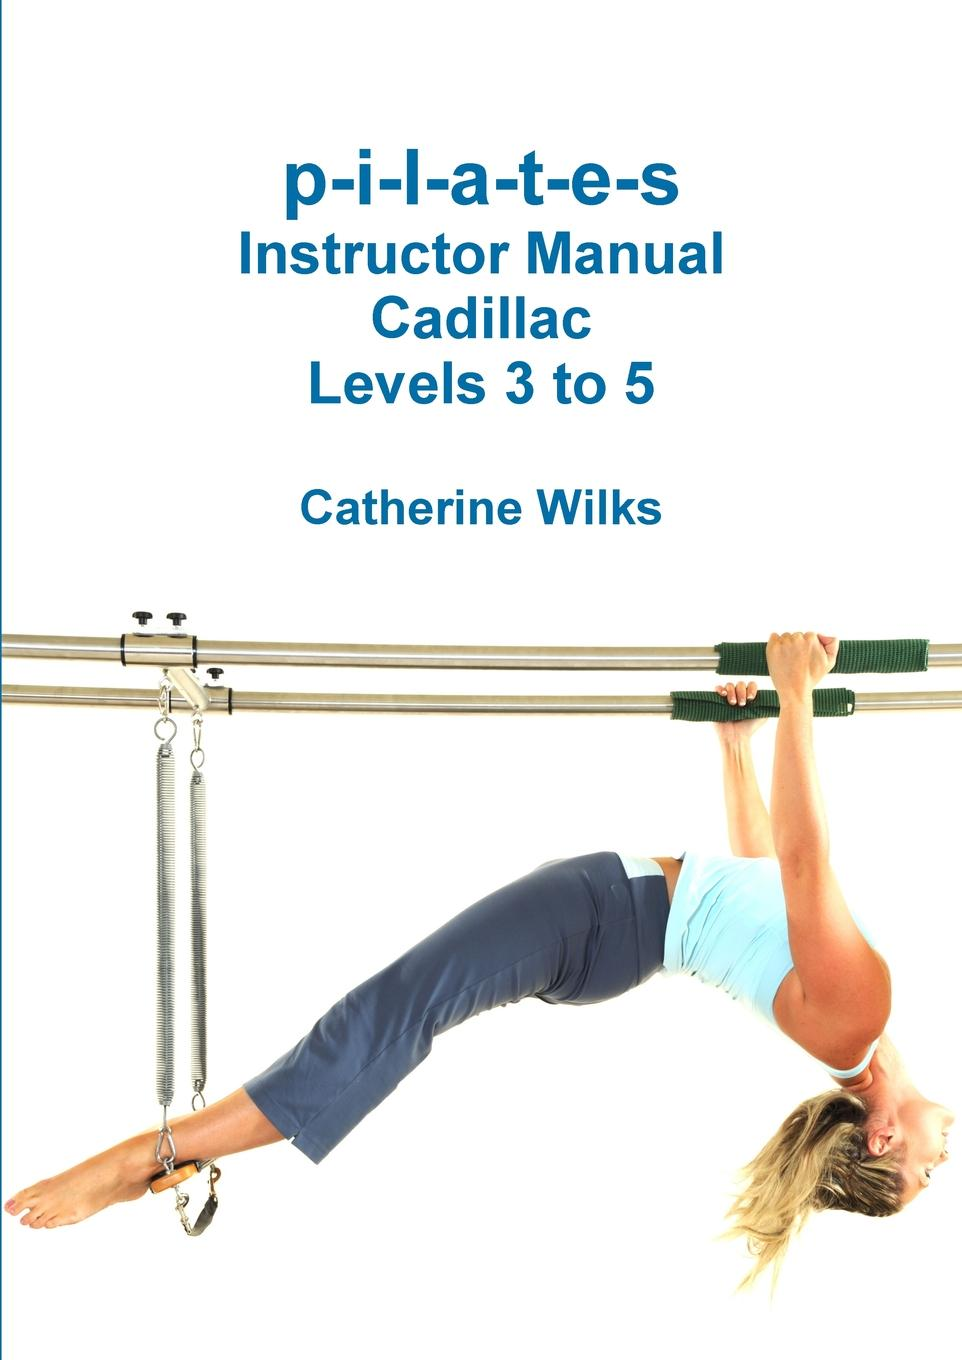 Catherine Wilks p-i-l-a-t-e-s Instructor Manual Cadillac Levels 3 to 5 любимый дом шкаф александрия 618 040